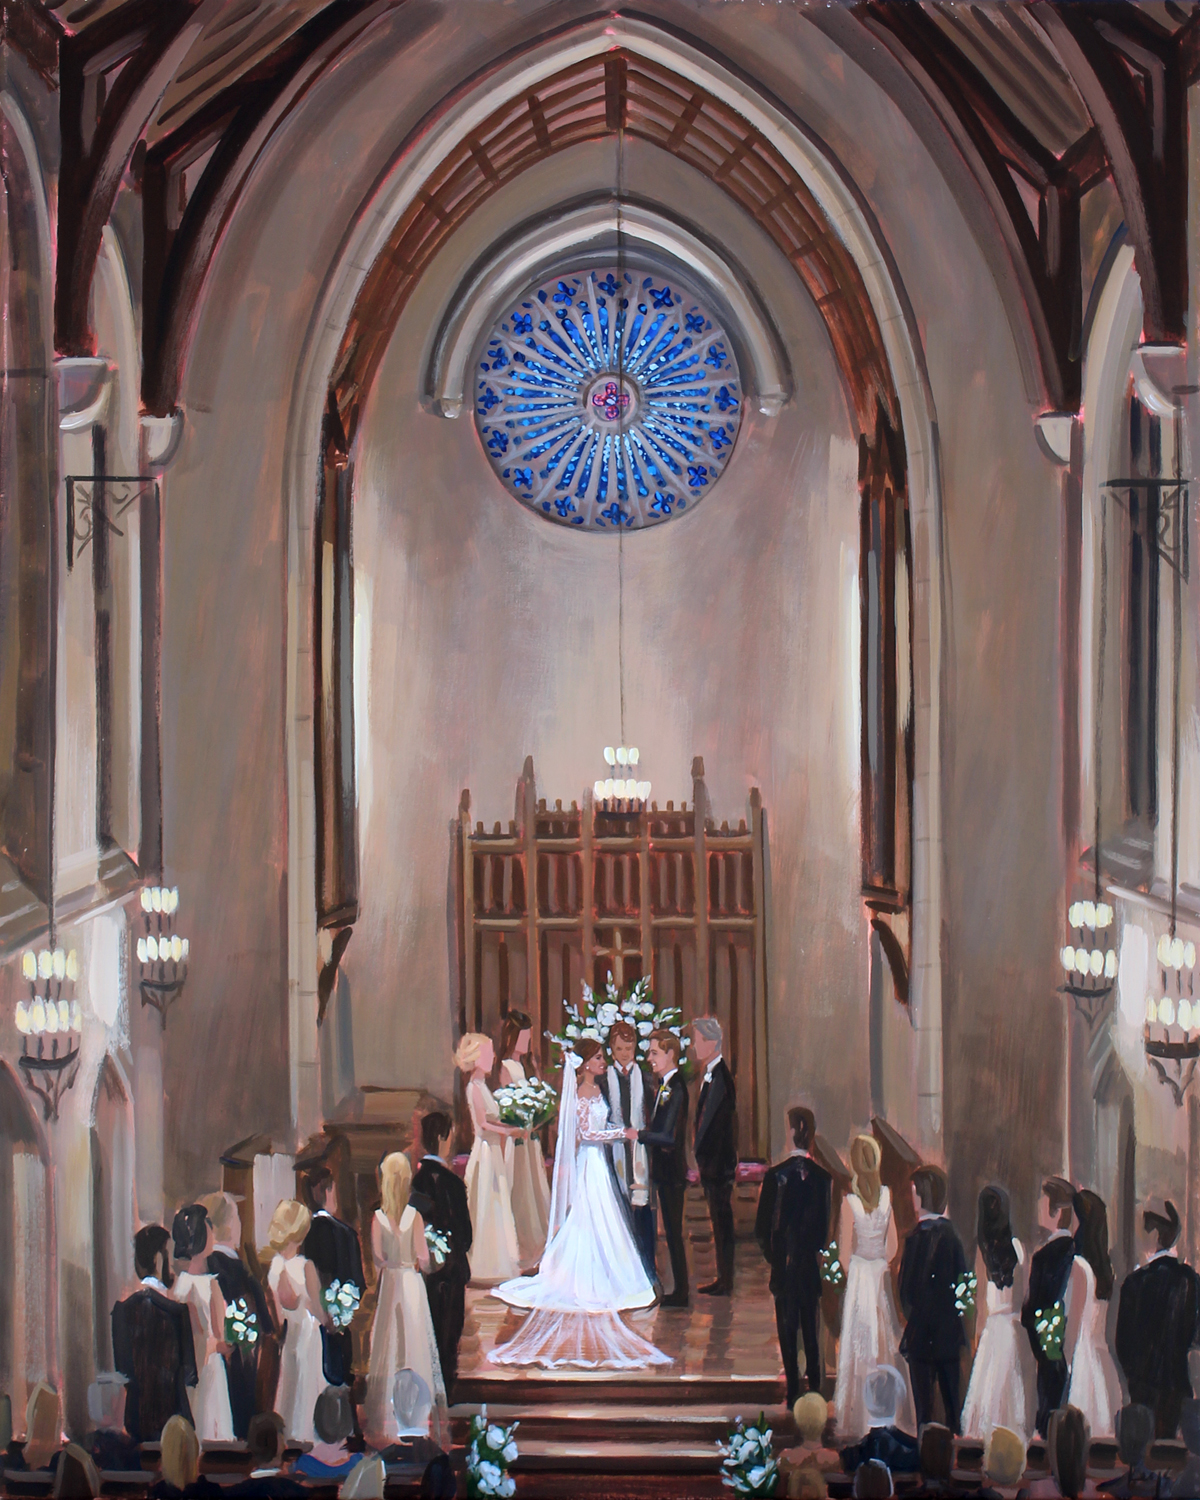 Alison + Rally commissioned live wedding painter, Ben Keys, of Wed on Canvas to capture their ceremony held at downtown Wilmington's First Presbyterian Church.